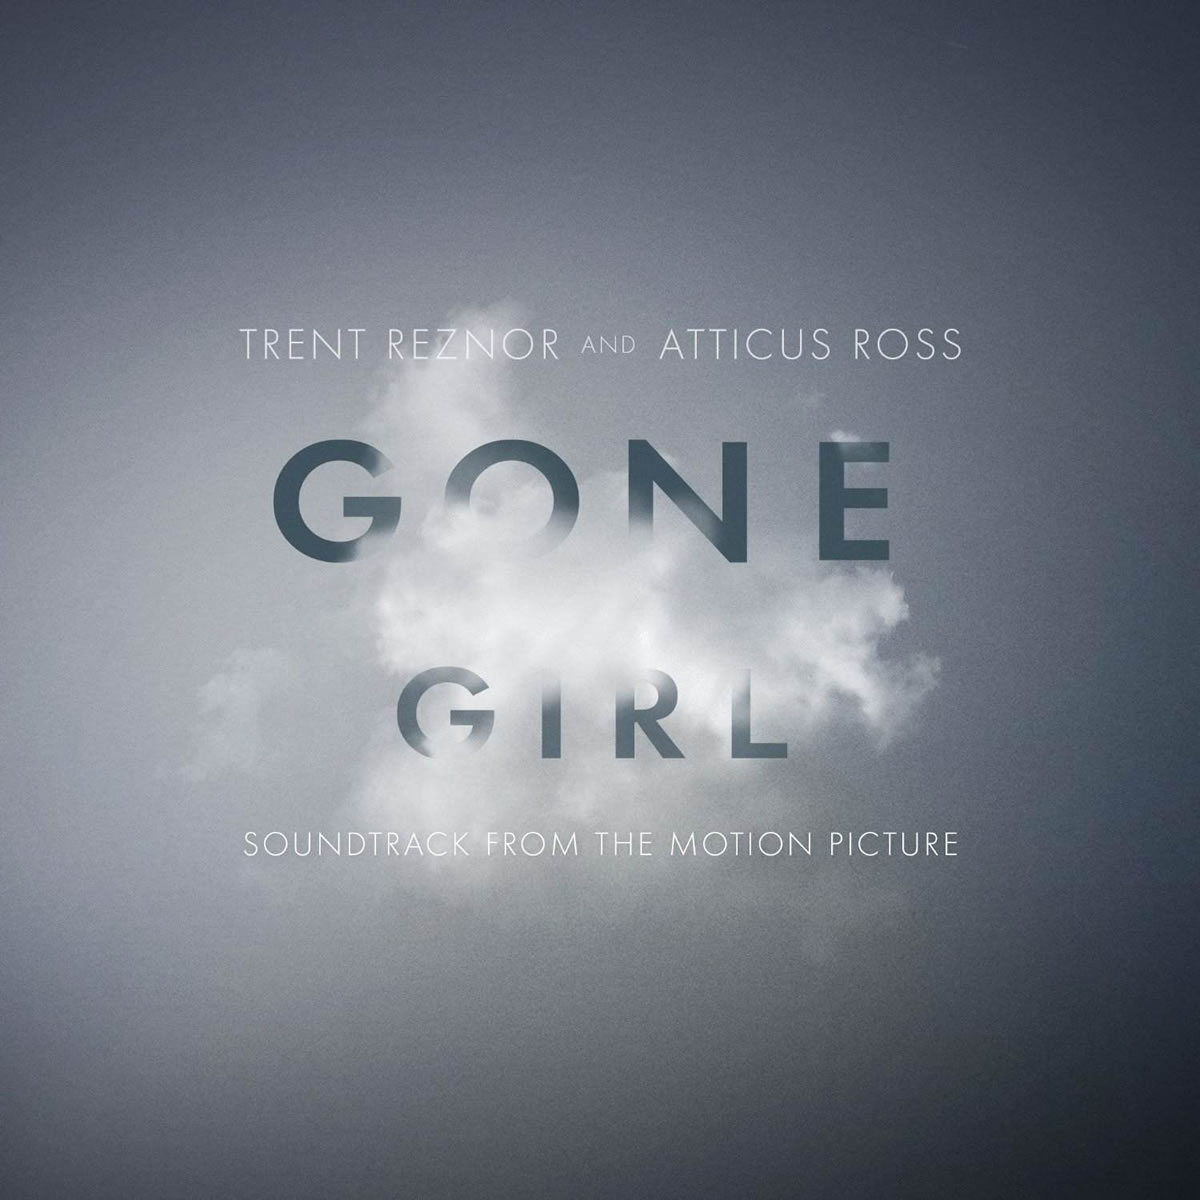 GONE GIRL - ORIGINAL MOTION PICTURE SOUNDTRACK (2 AUDIO CD)